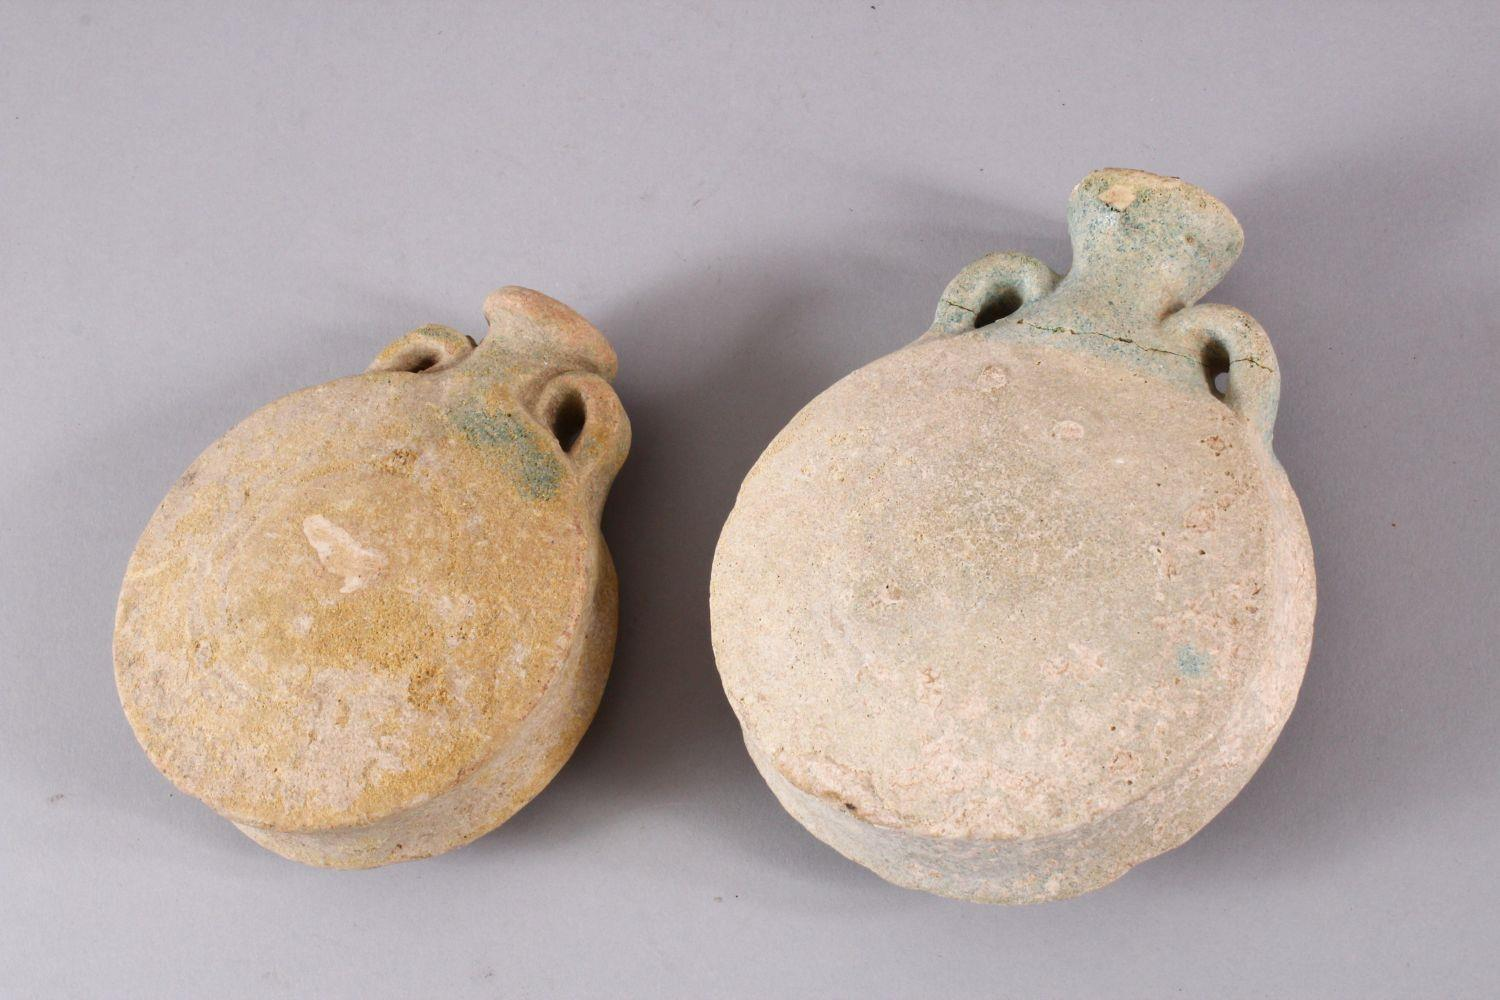 TWO 10TH CENTURY IRANAIN POTTERY TWIN HANDLE BOTTLES, each with traces of turquoise glaze to the - Image 2 of 2